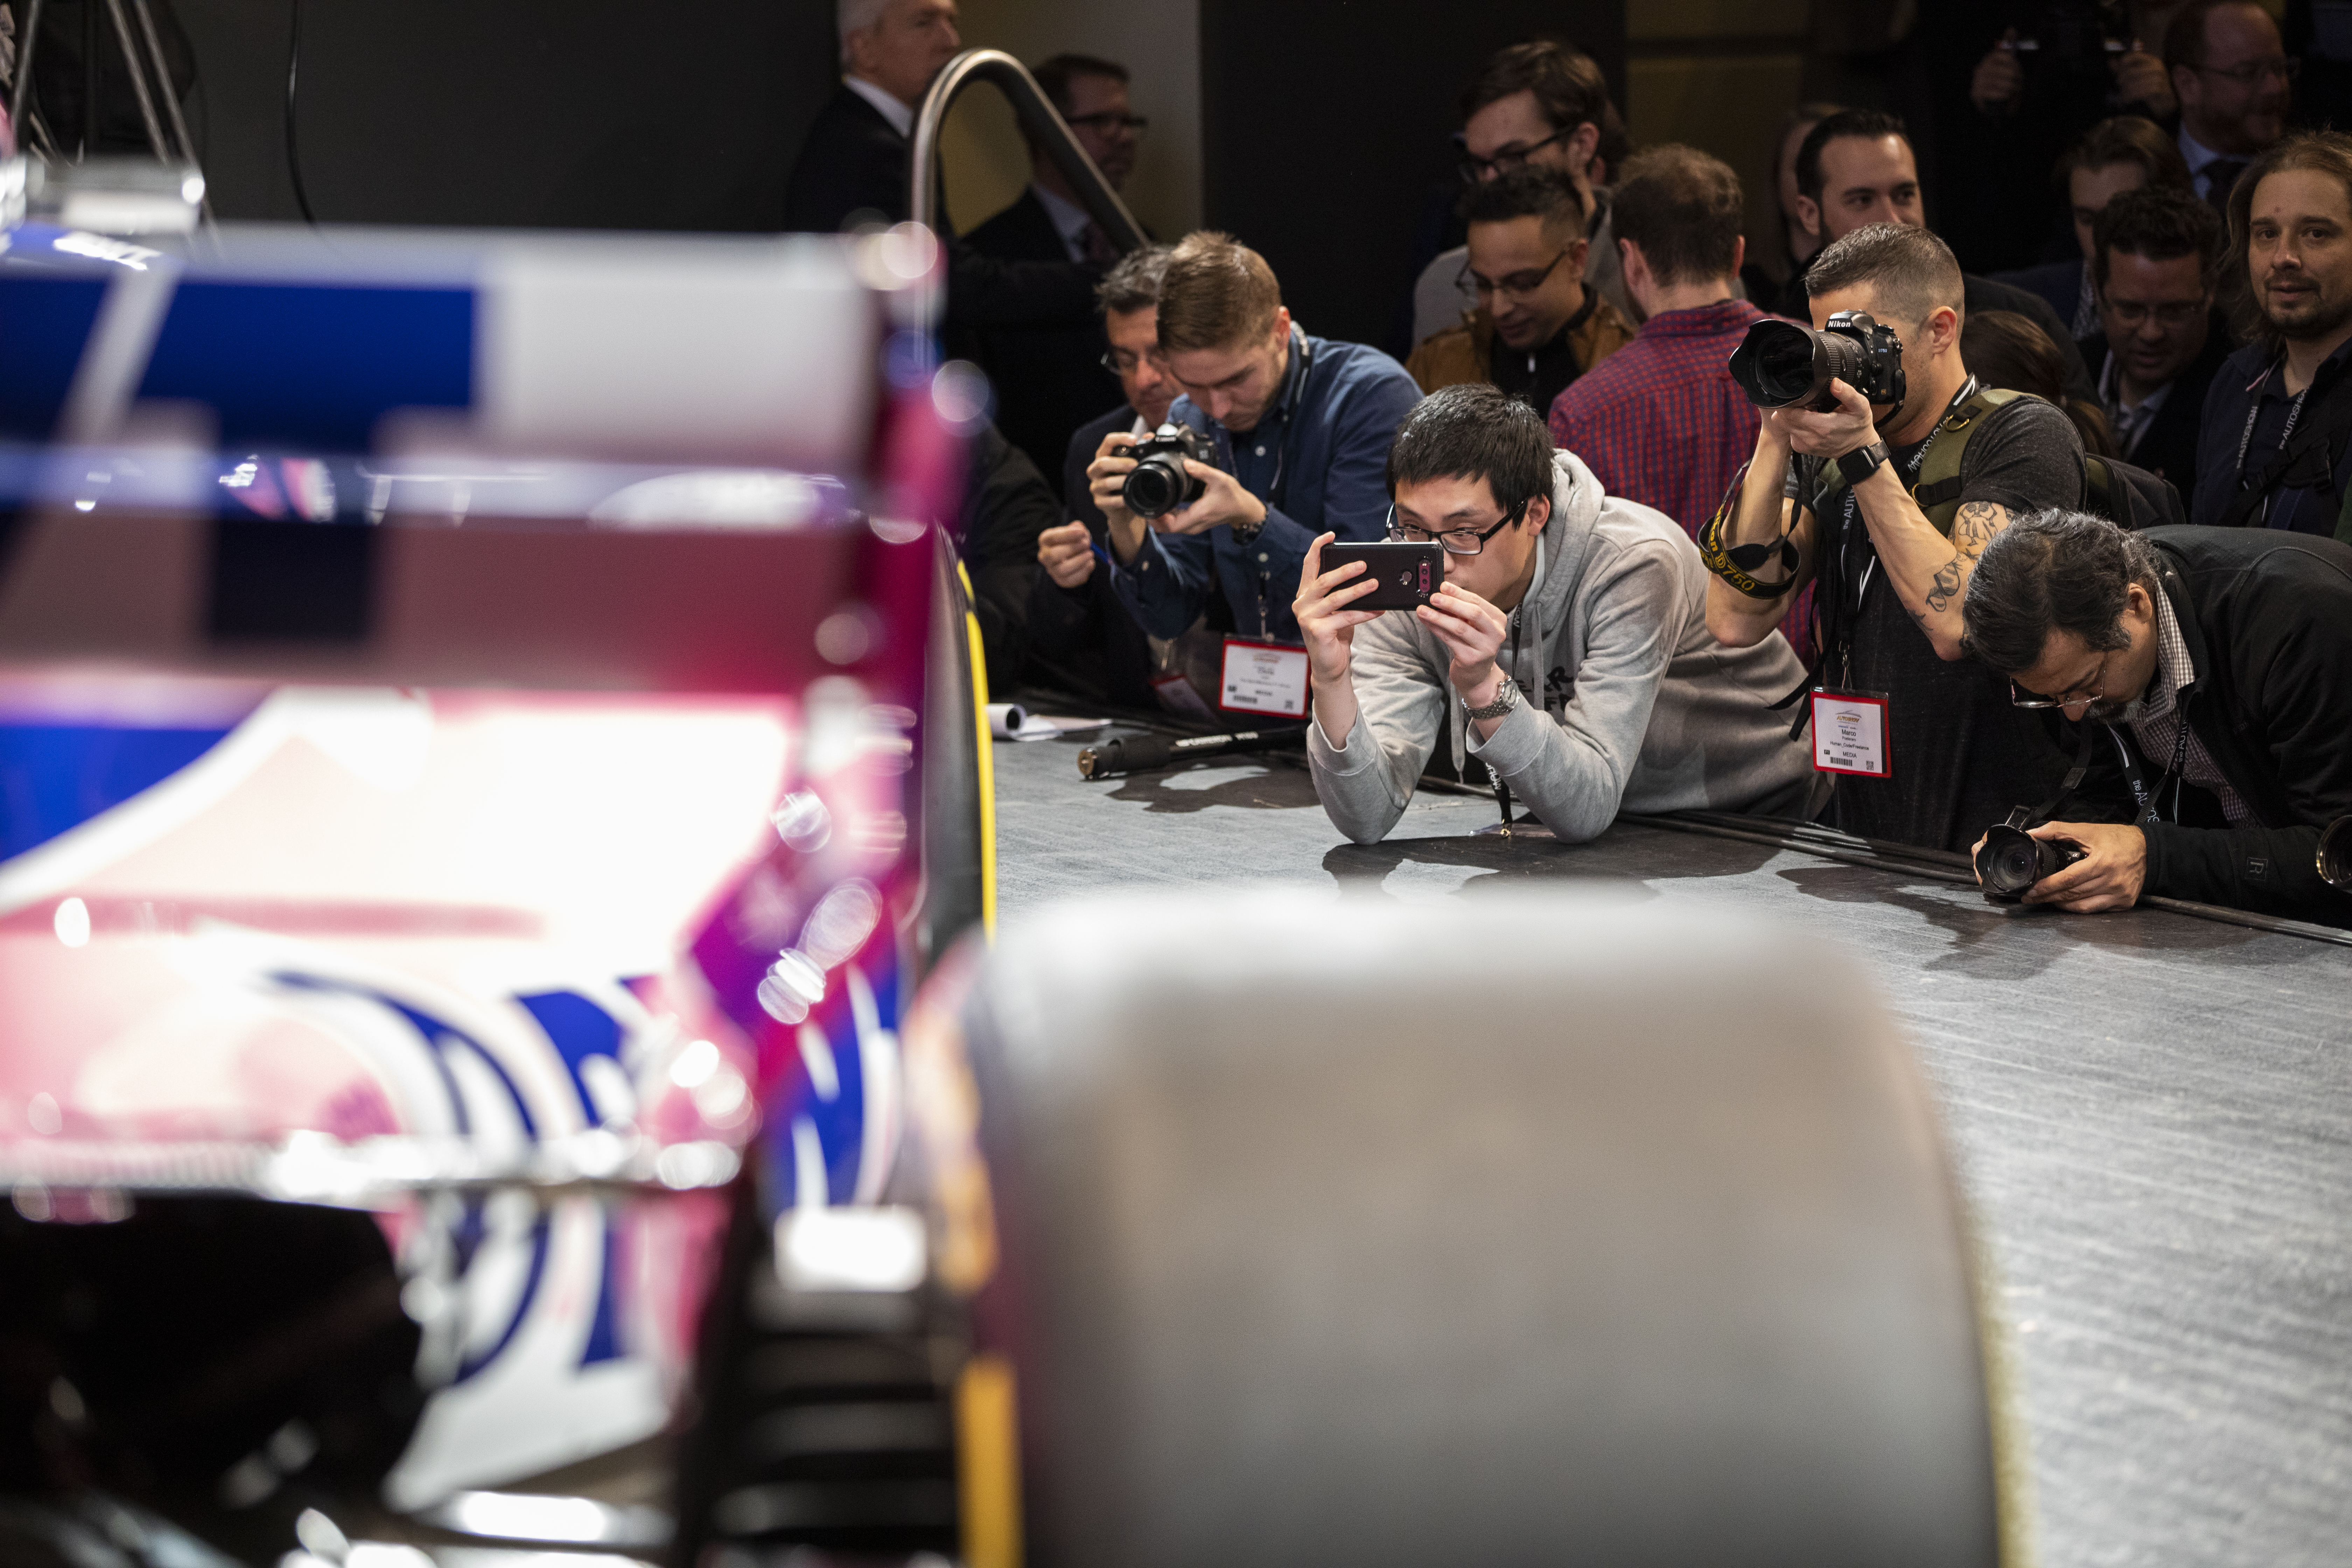 TORONTO, ON - FEBRUARY 13: Racing Point F1 team launch at the 2019 Canadian International Auto Show at the Metro Toronto Convention Centre on February 13, 2019 in Toronto, Ontario, Canada. (Photo by Lucas Oleniuk)